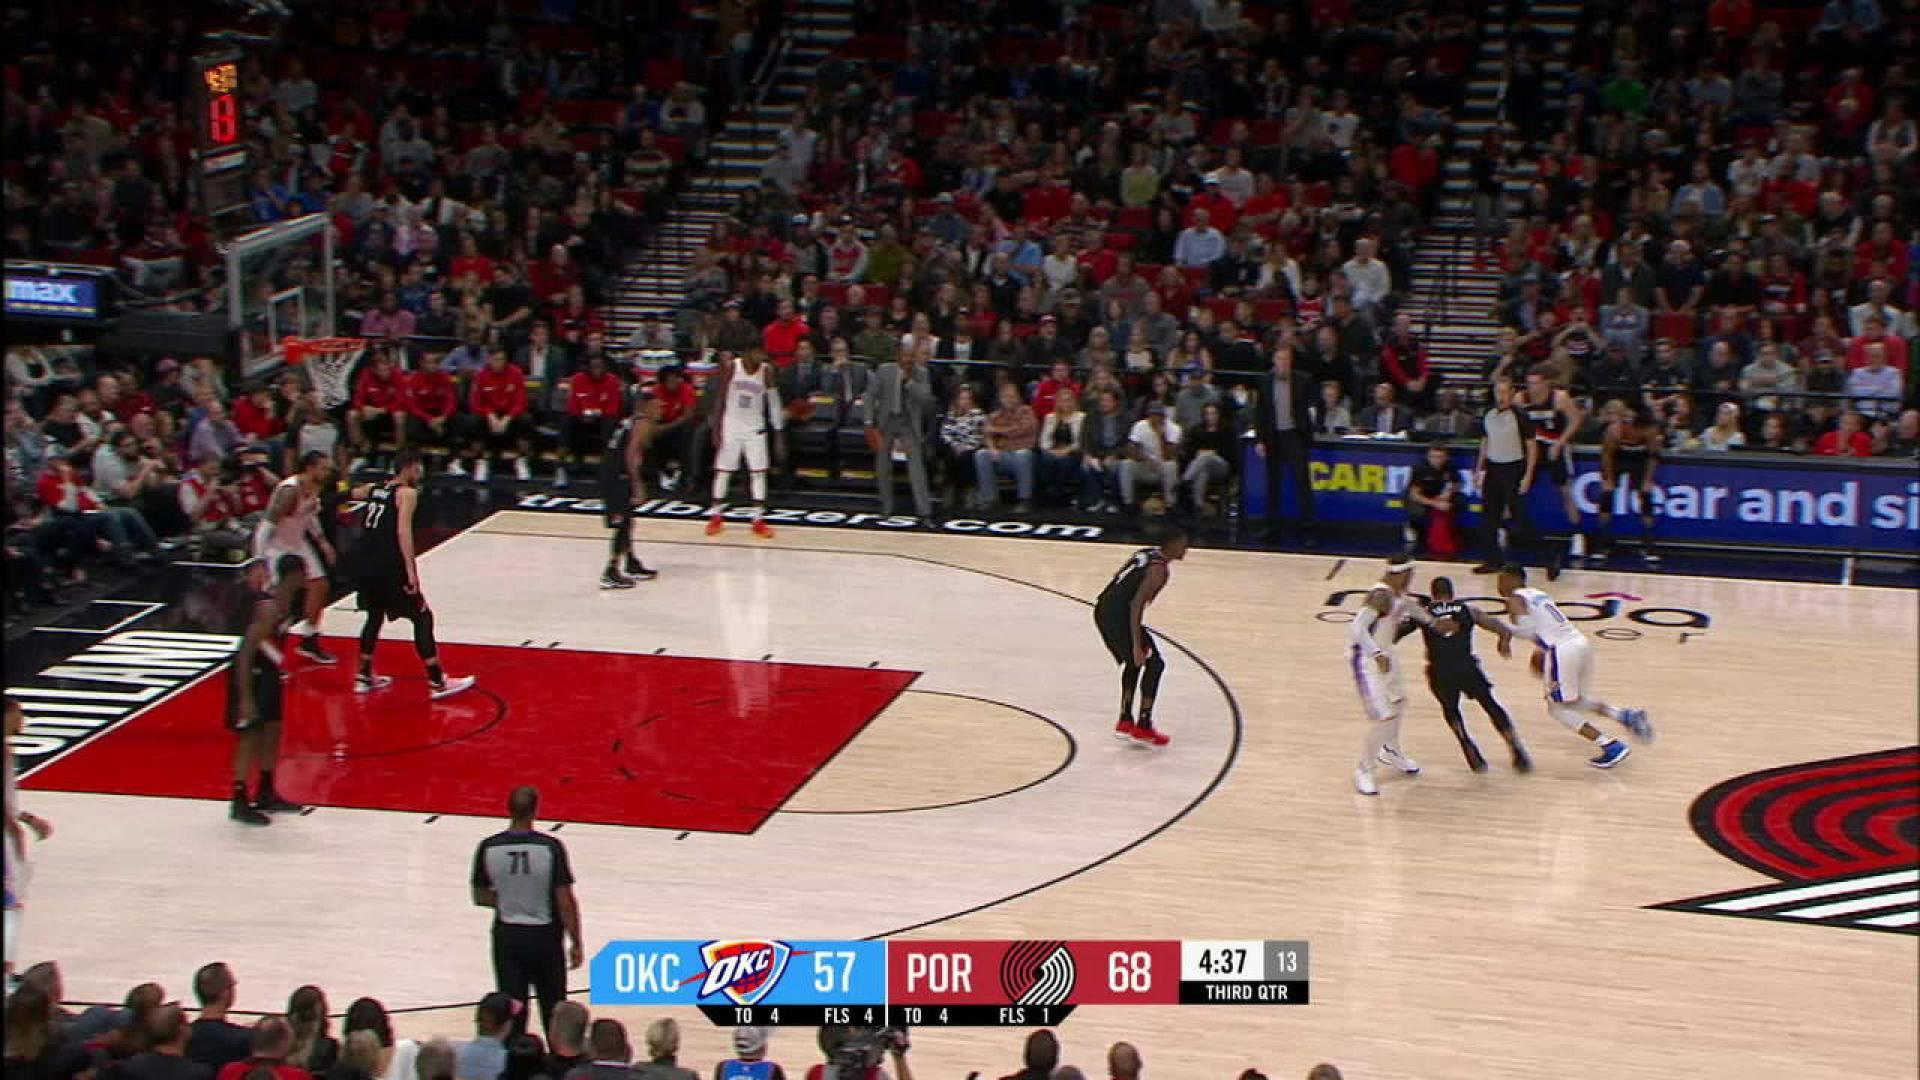 Controversial Call Costs Thunder Against Blazers